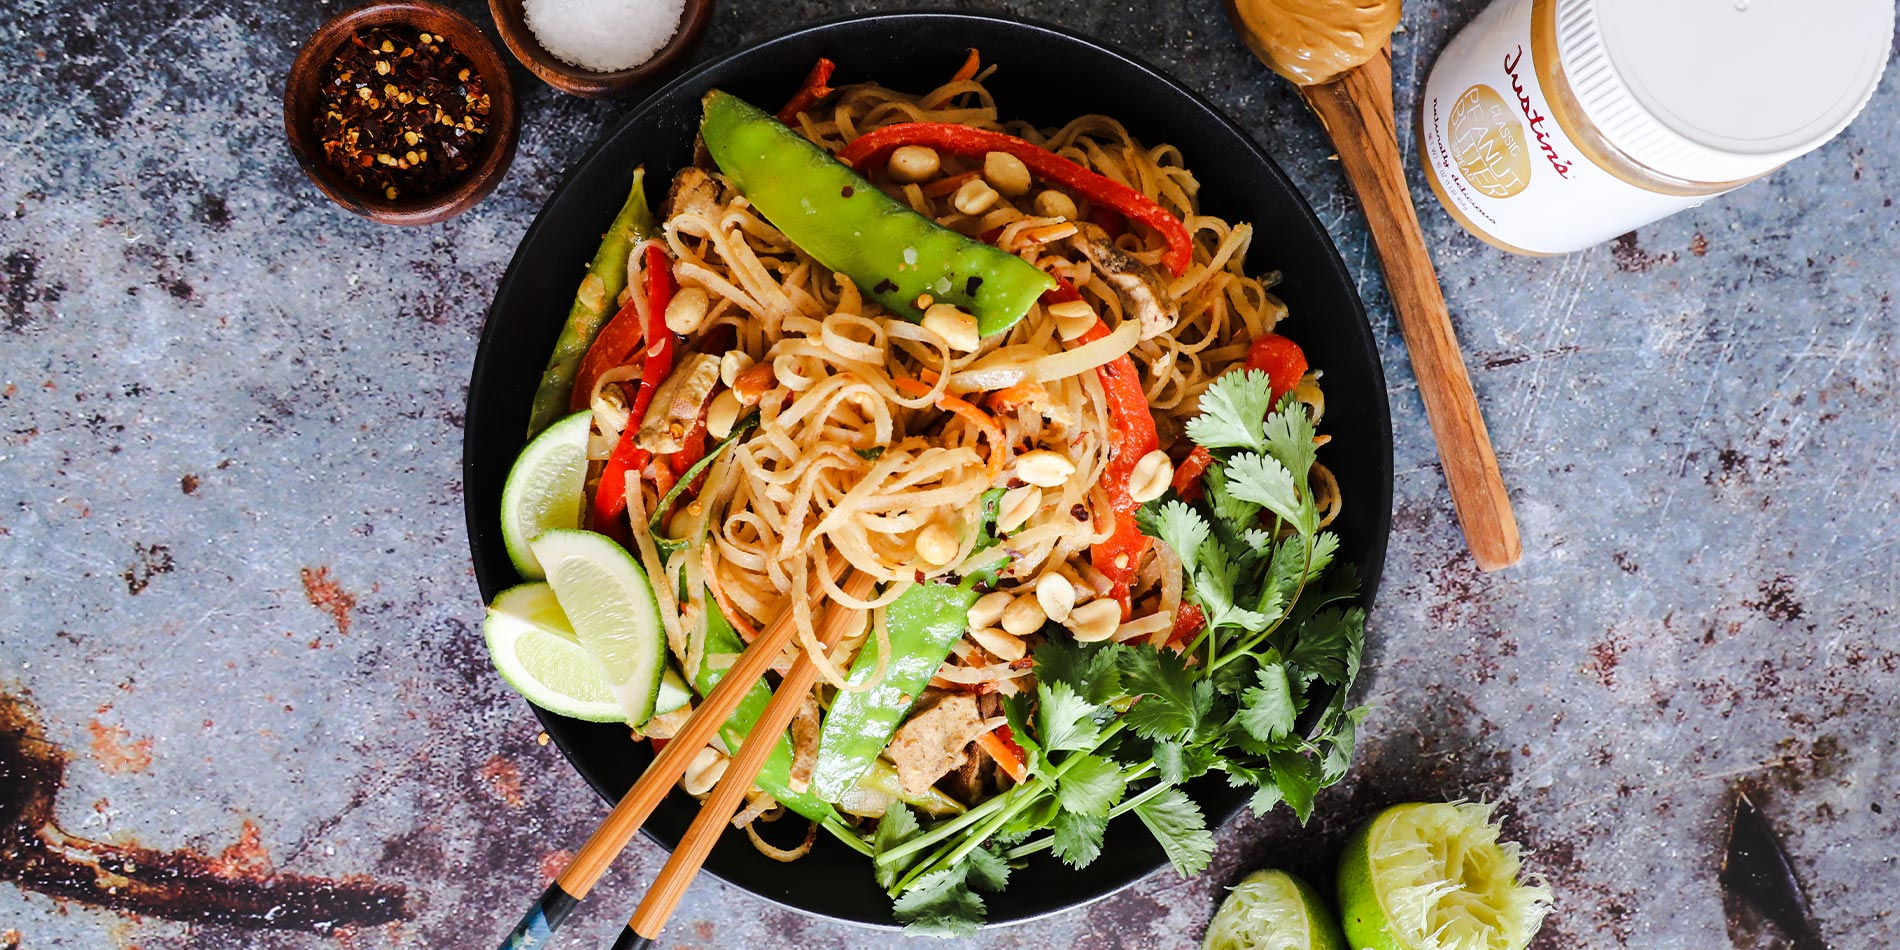 Thai Peanut Noodles in a black bowl with a spoonful of peanut butter on the side on a gritty gray background with lime slices